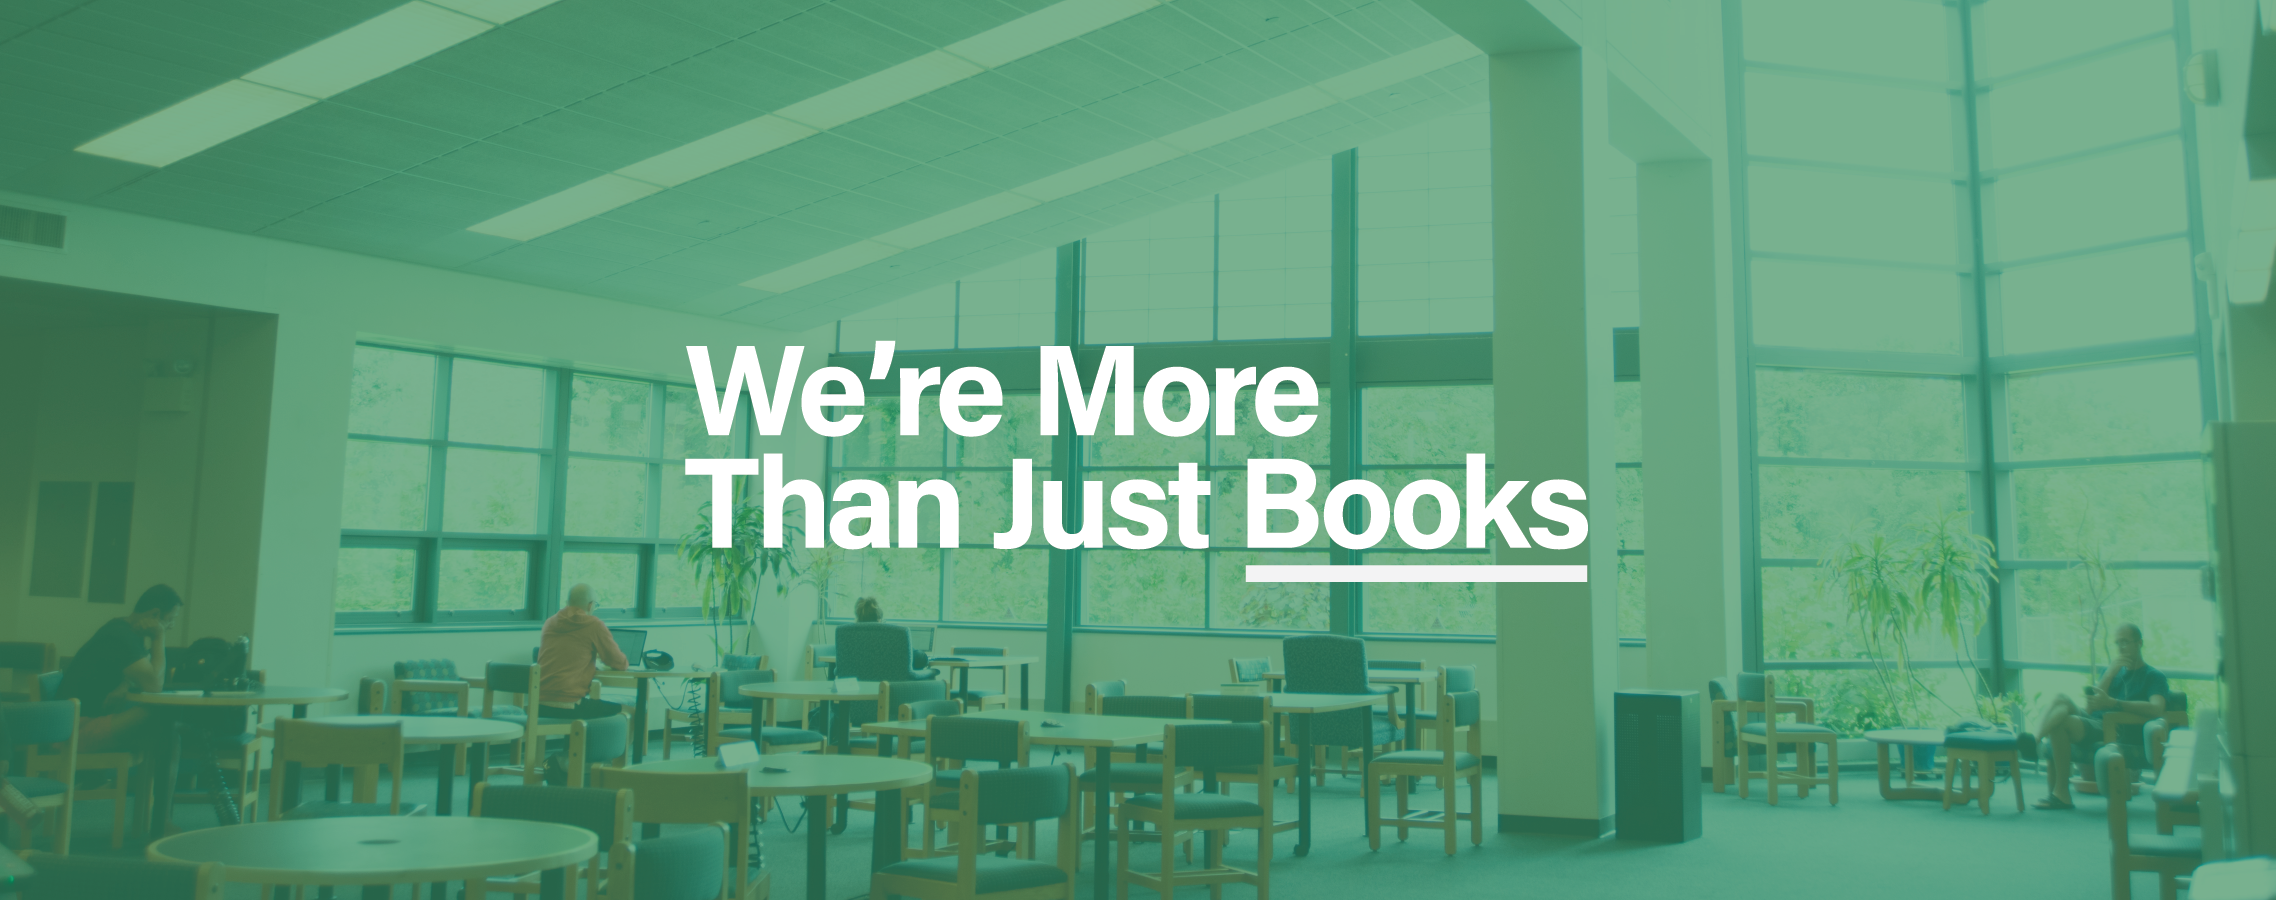 We are more than just books